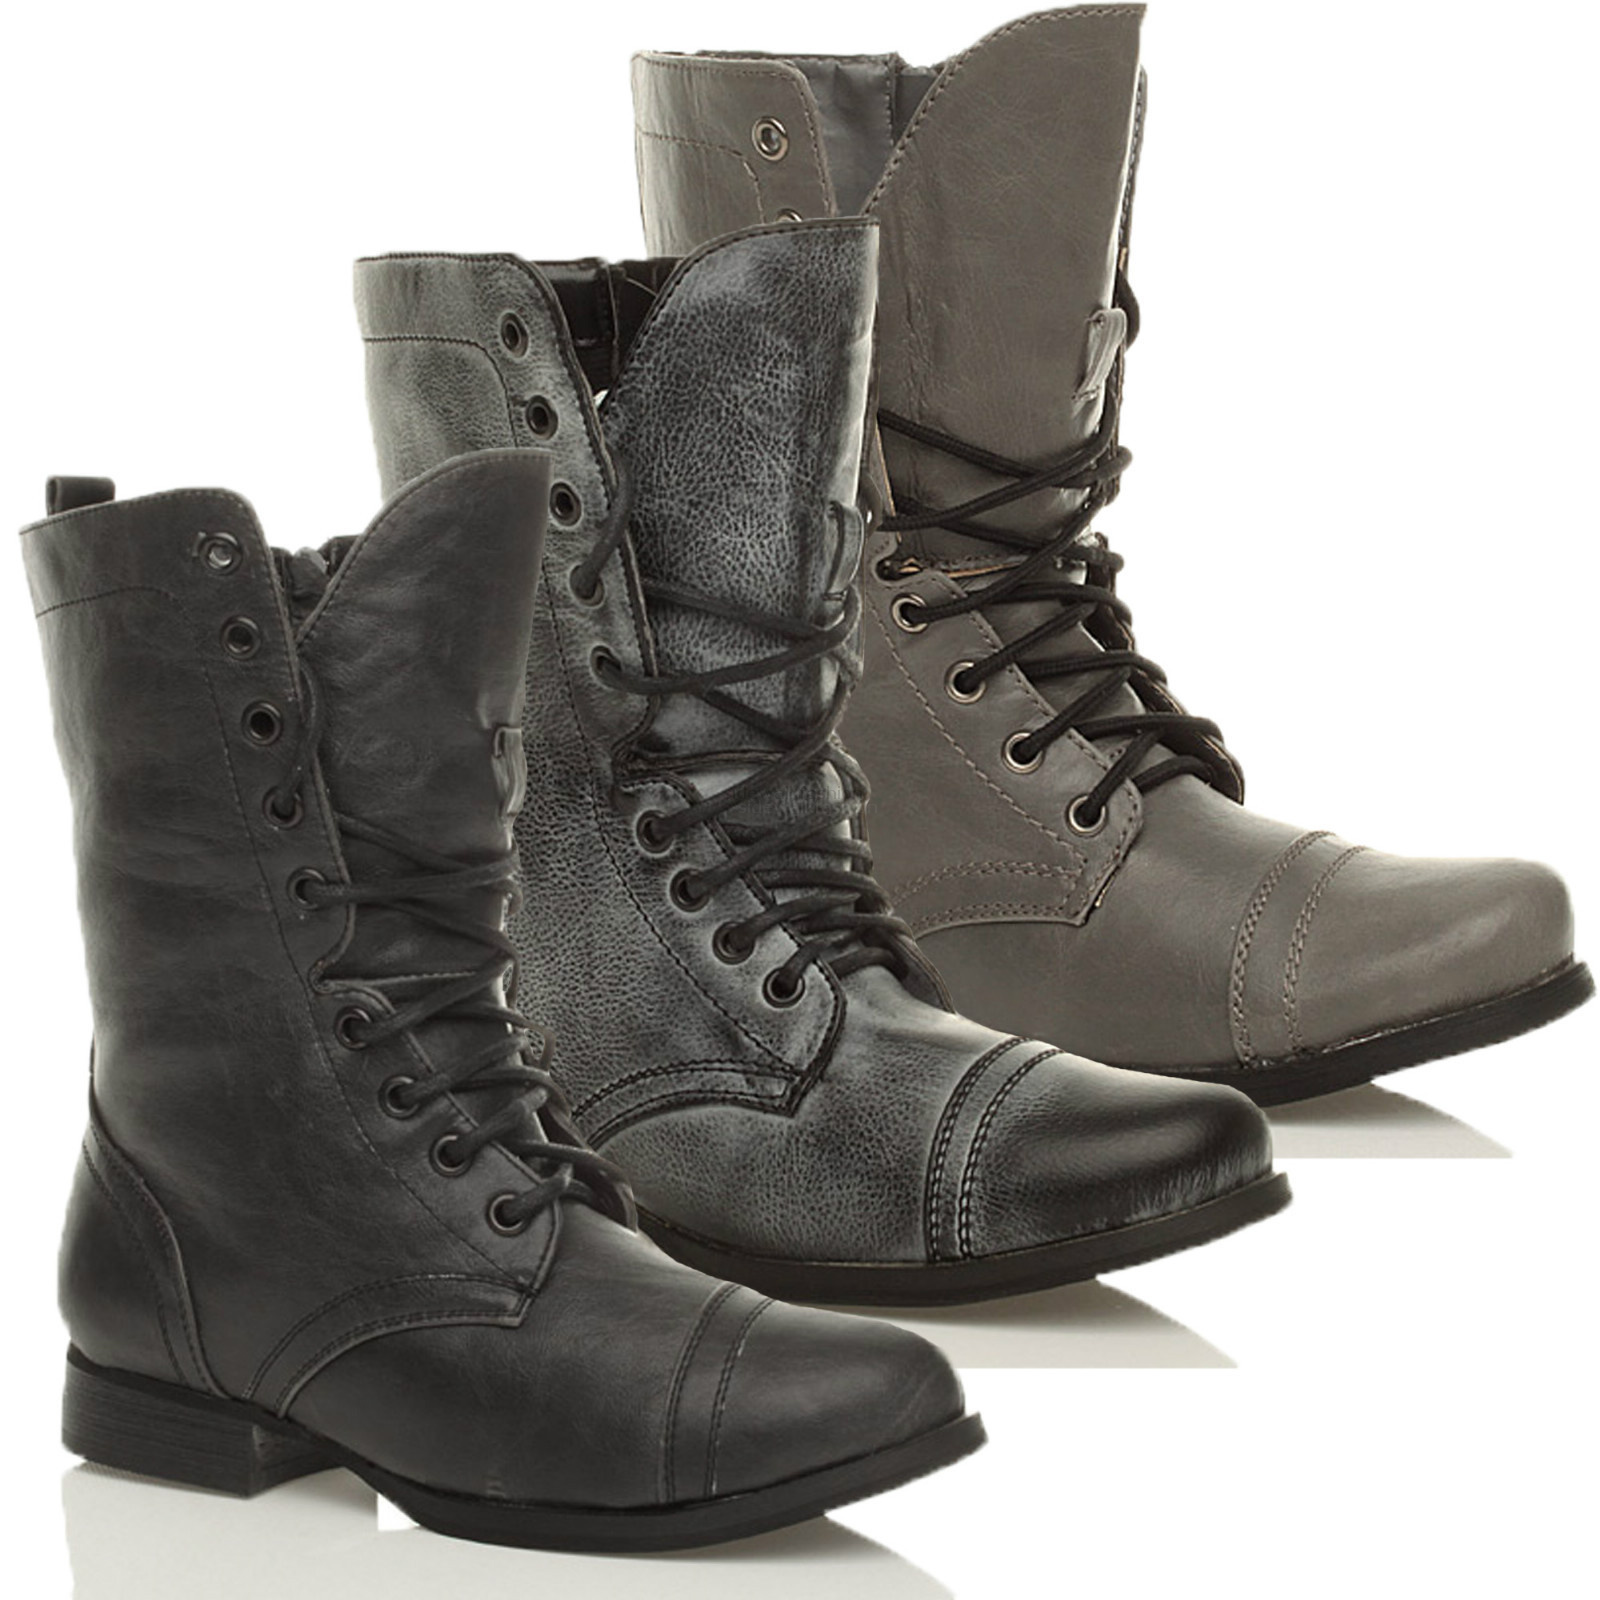 Simple New Womenu0026#39;s Knee High Lace Up Buckle Fashion Combat Military Boots SOLDIER | EBay